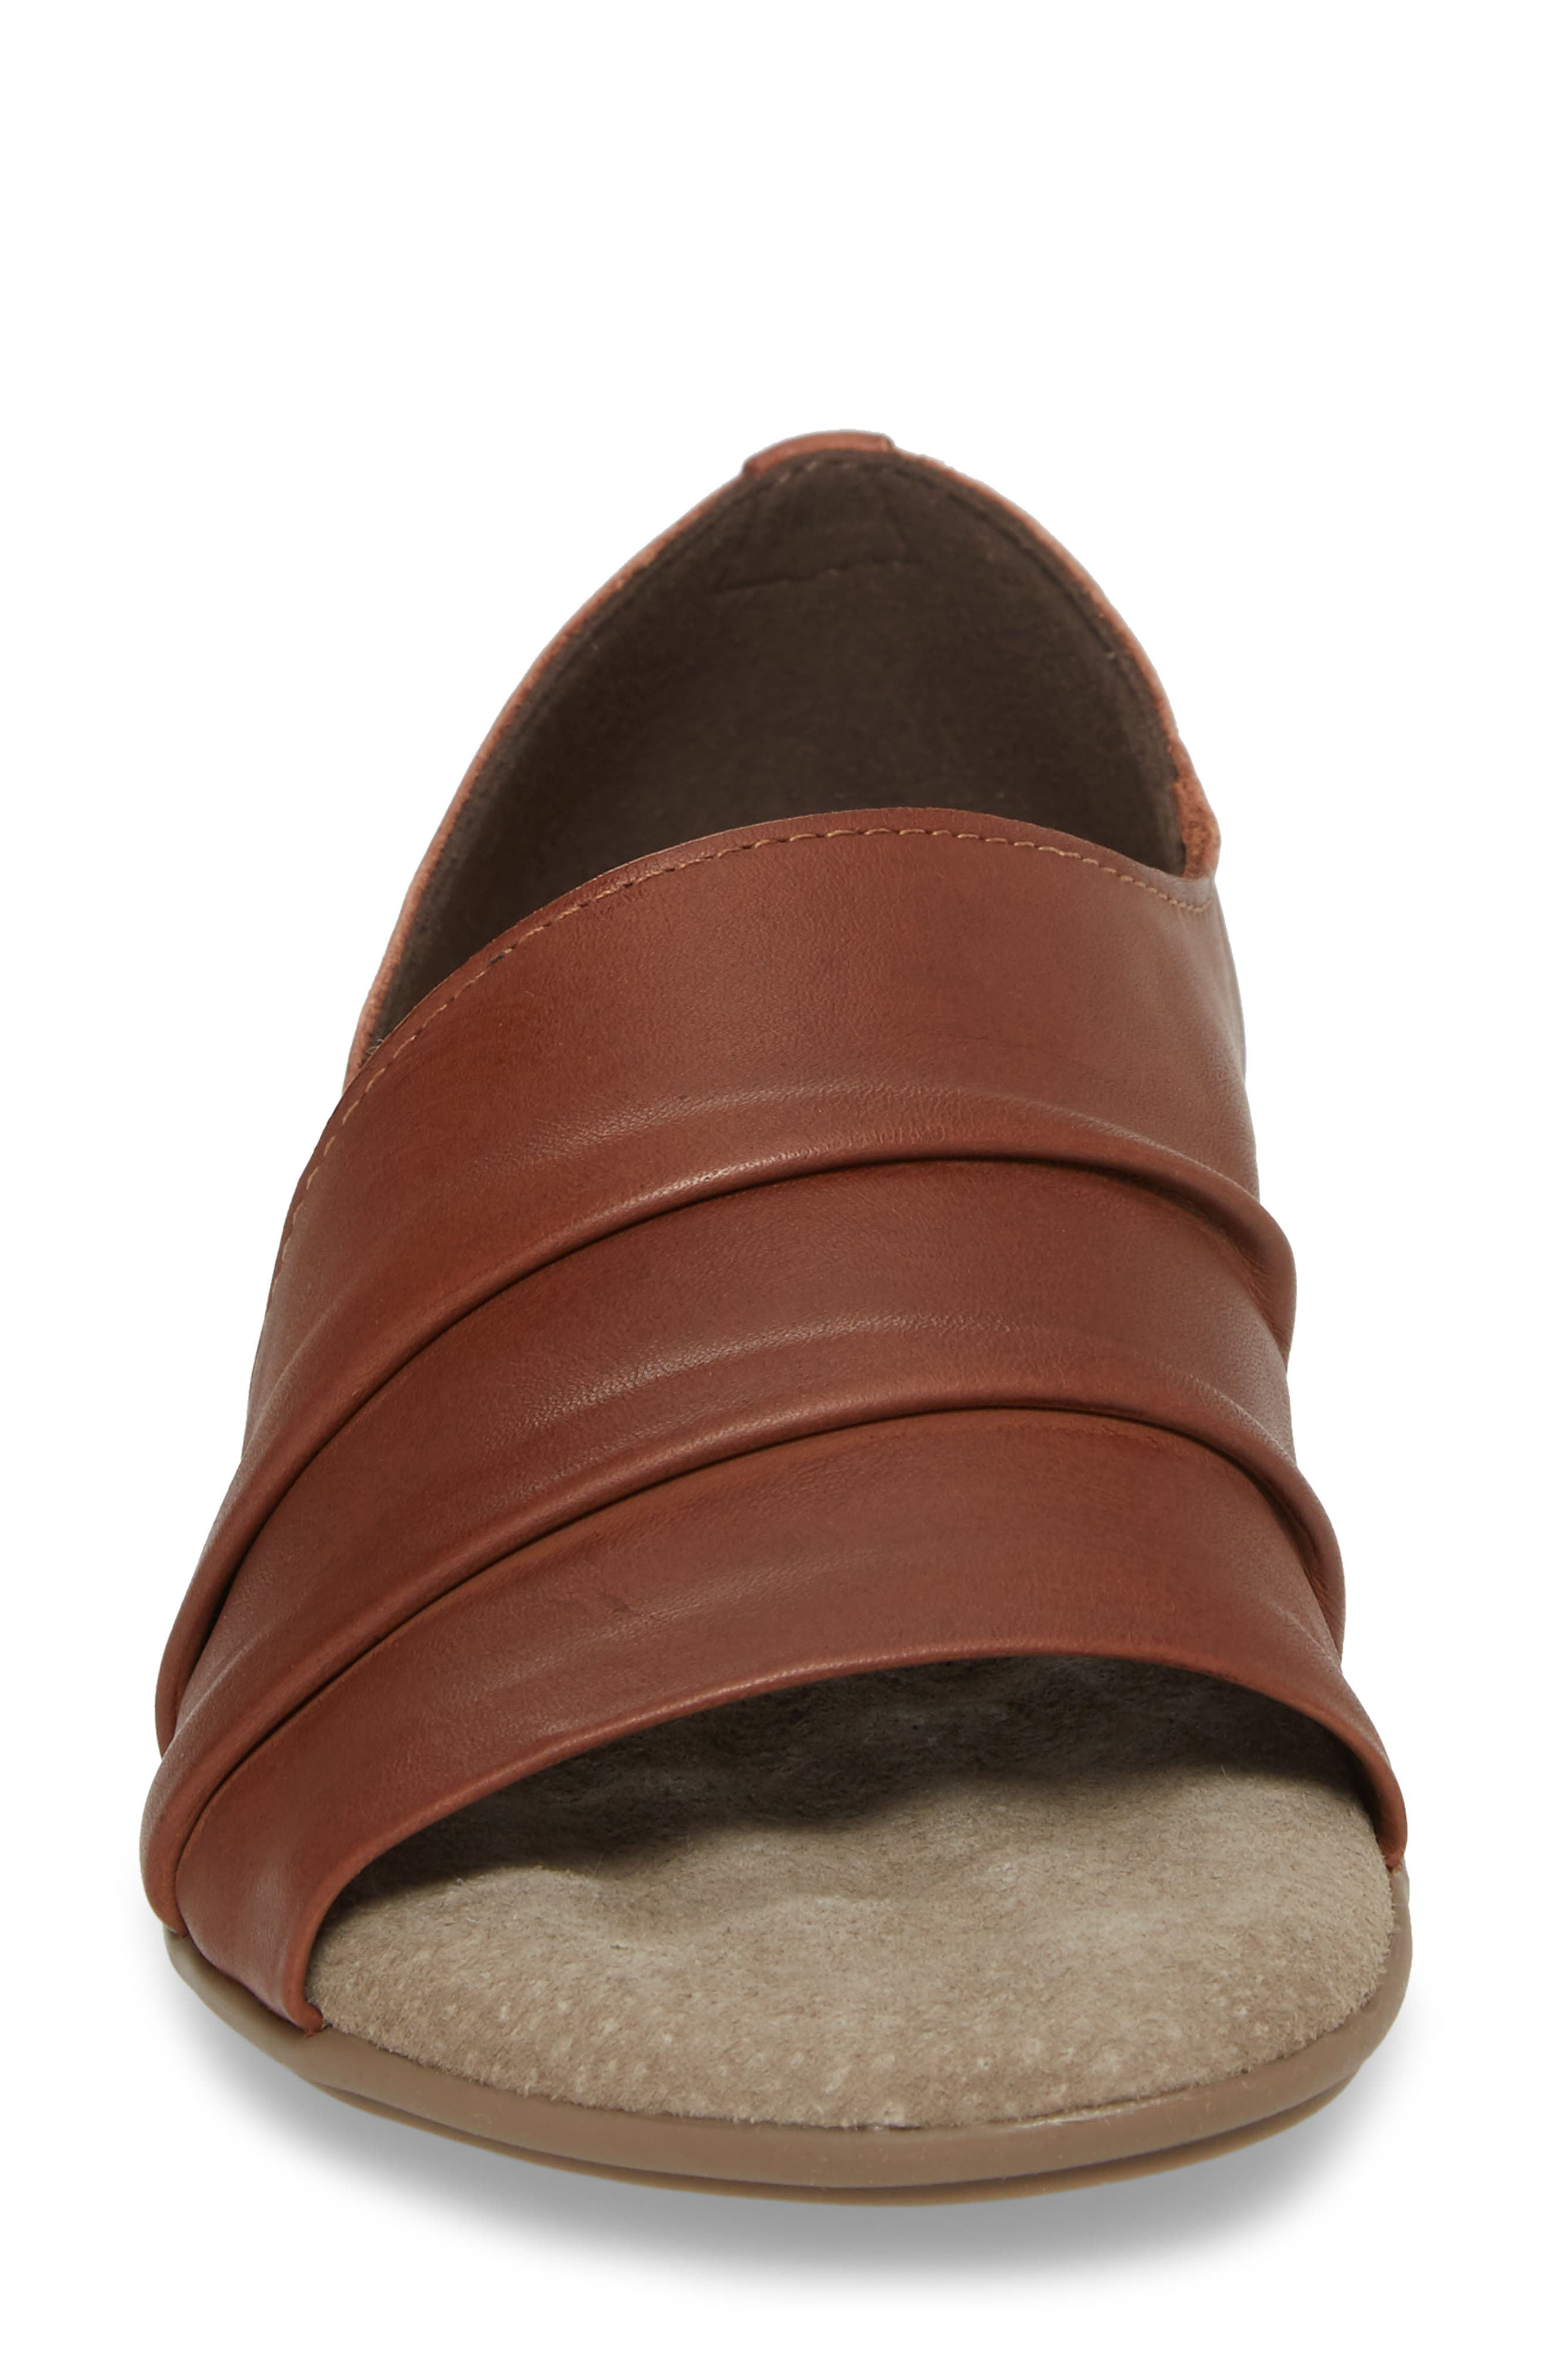 Bronte Flat,                             Alternate thumbnail 4, color,                             CAMEL LEATHER